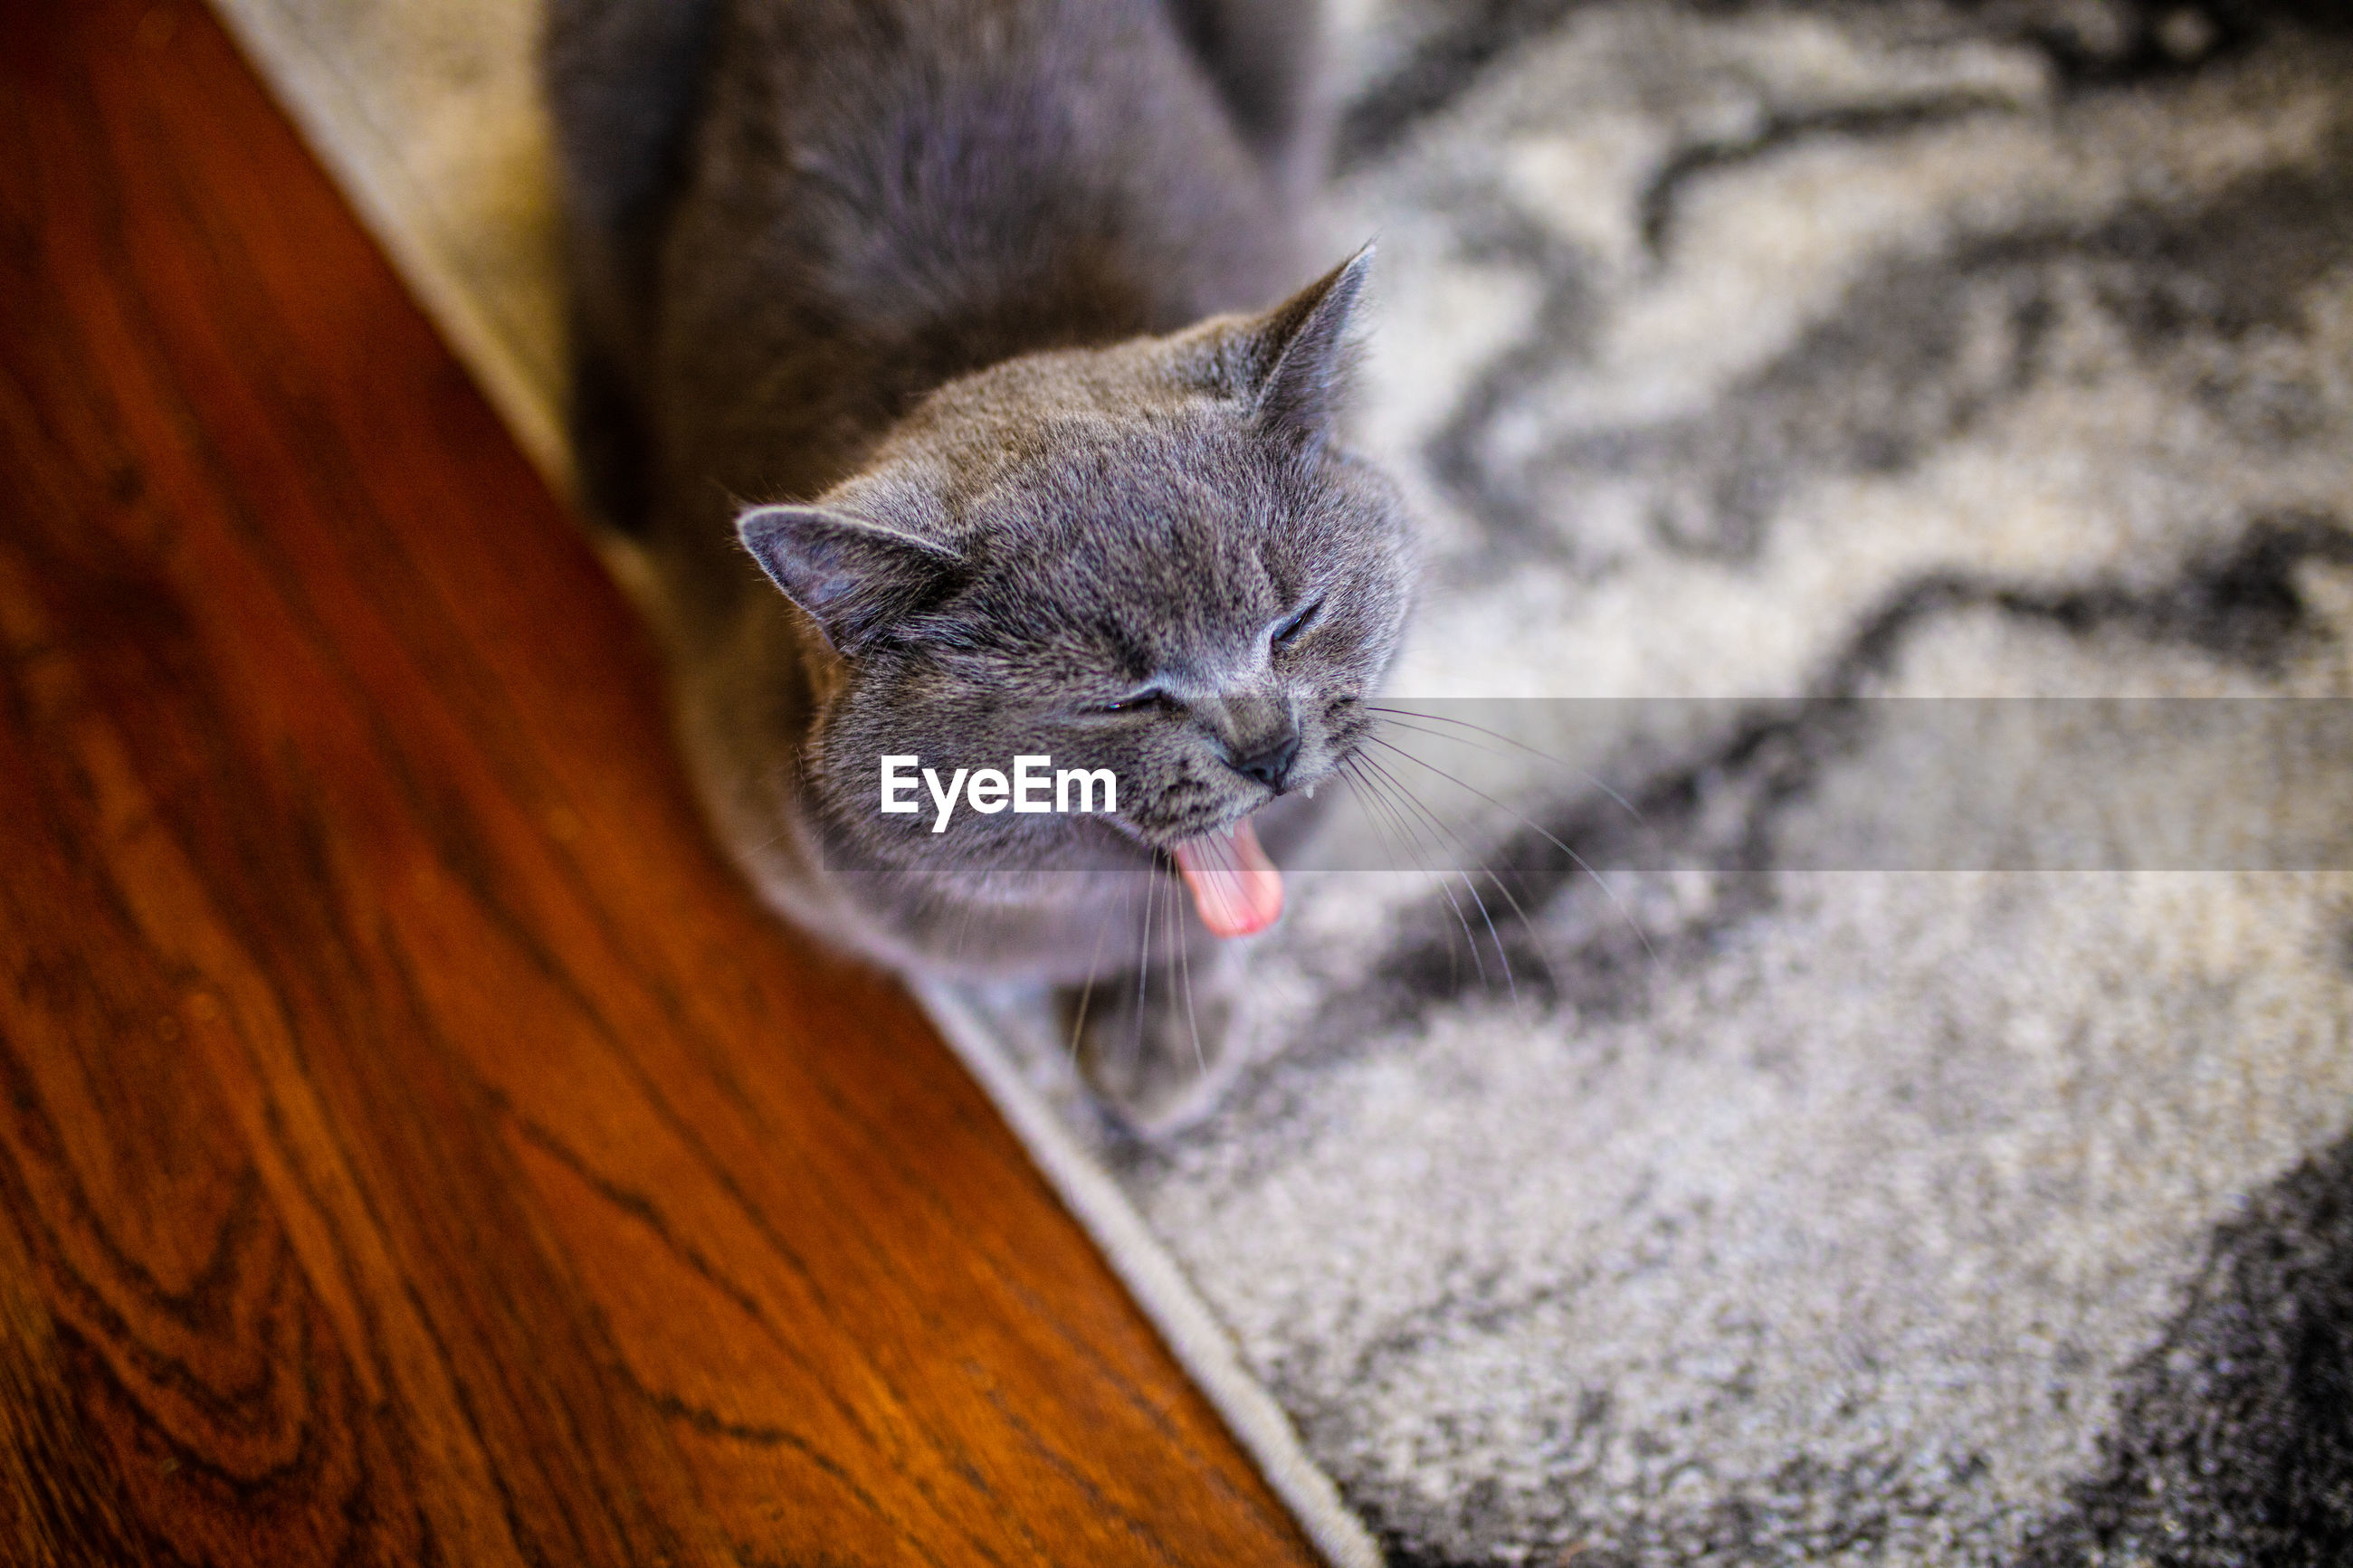 HIGH ANGLE VIEW OF A CAT RESTING ON FLOOR